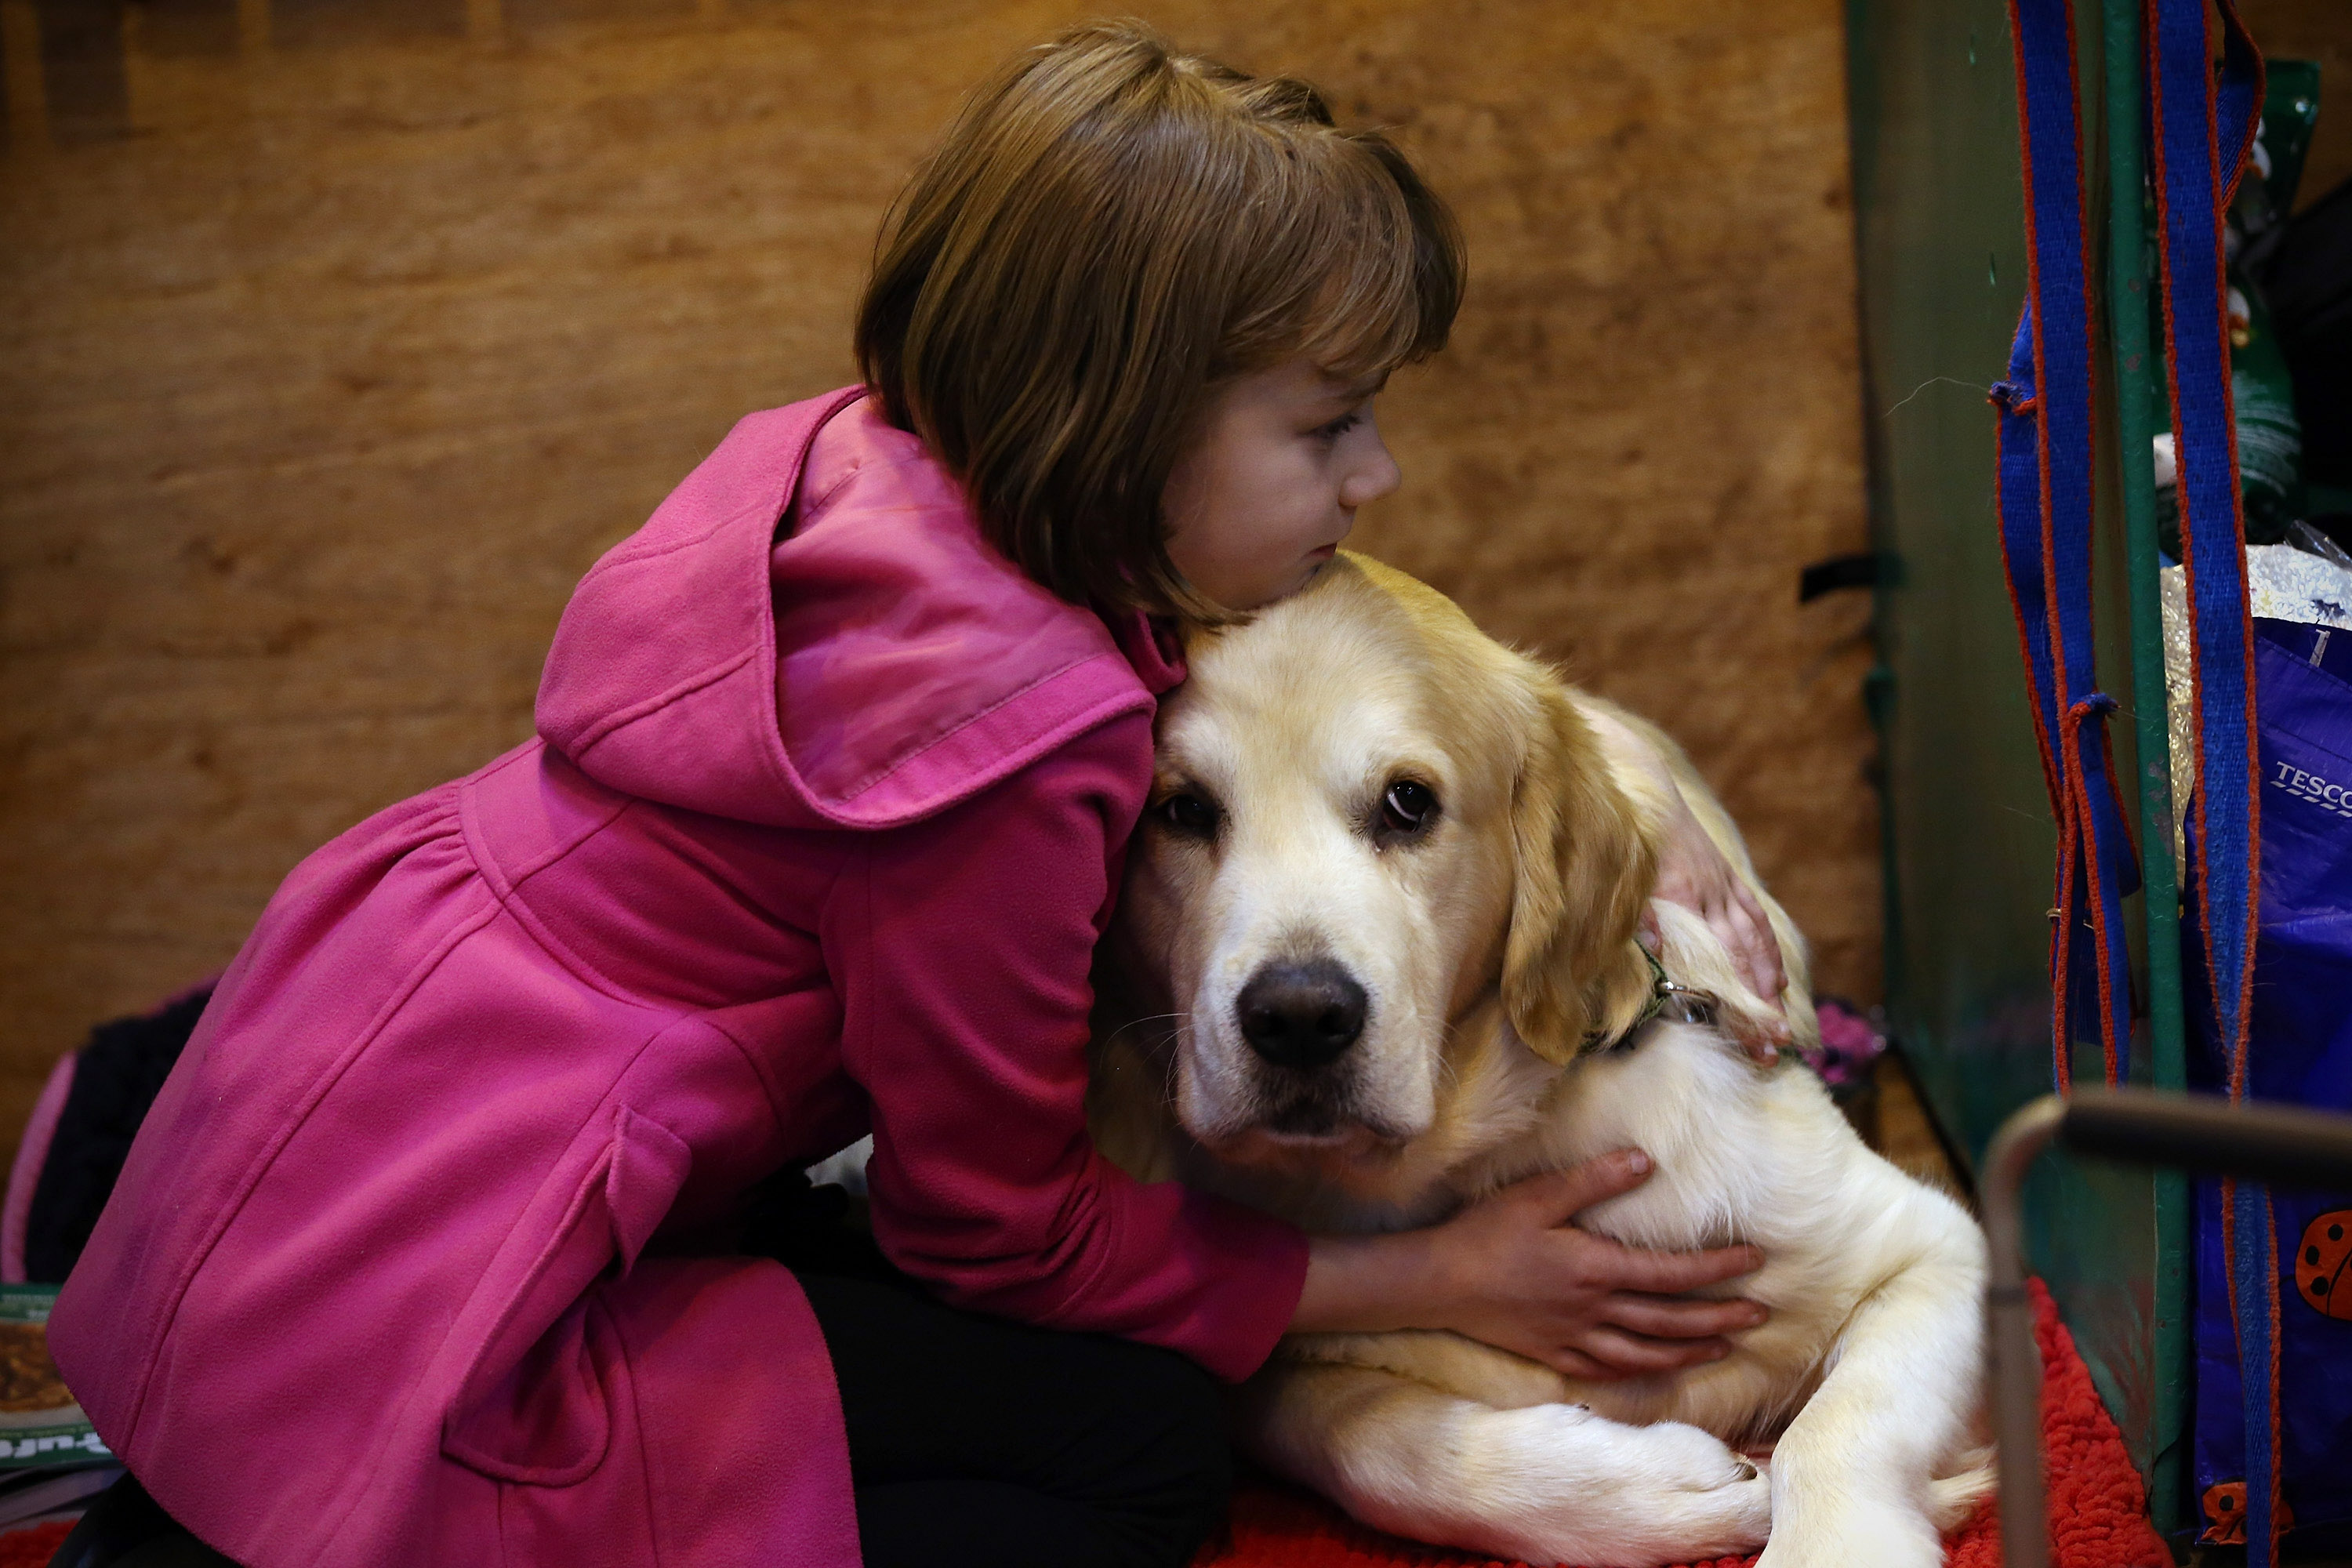 Pets lead to more emotionally healthy kids, study finds